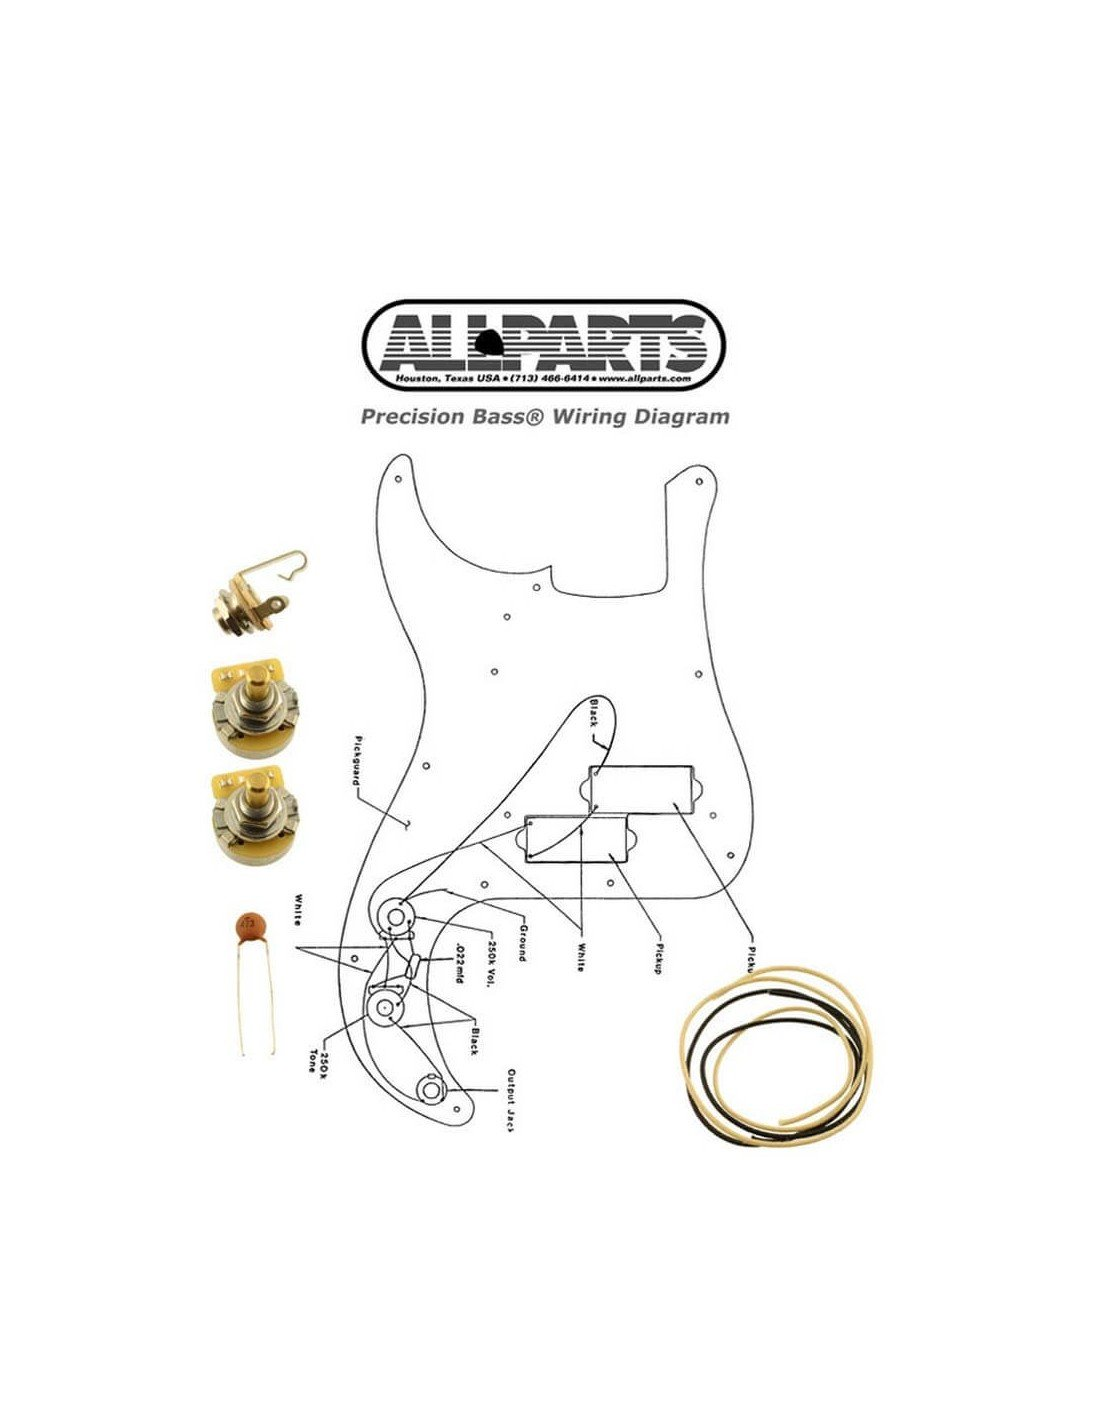 Comprar Allparts Ep 000 Wiring Kit For Precision